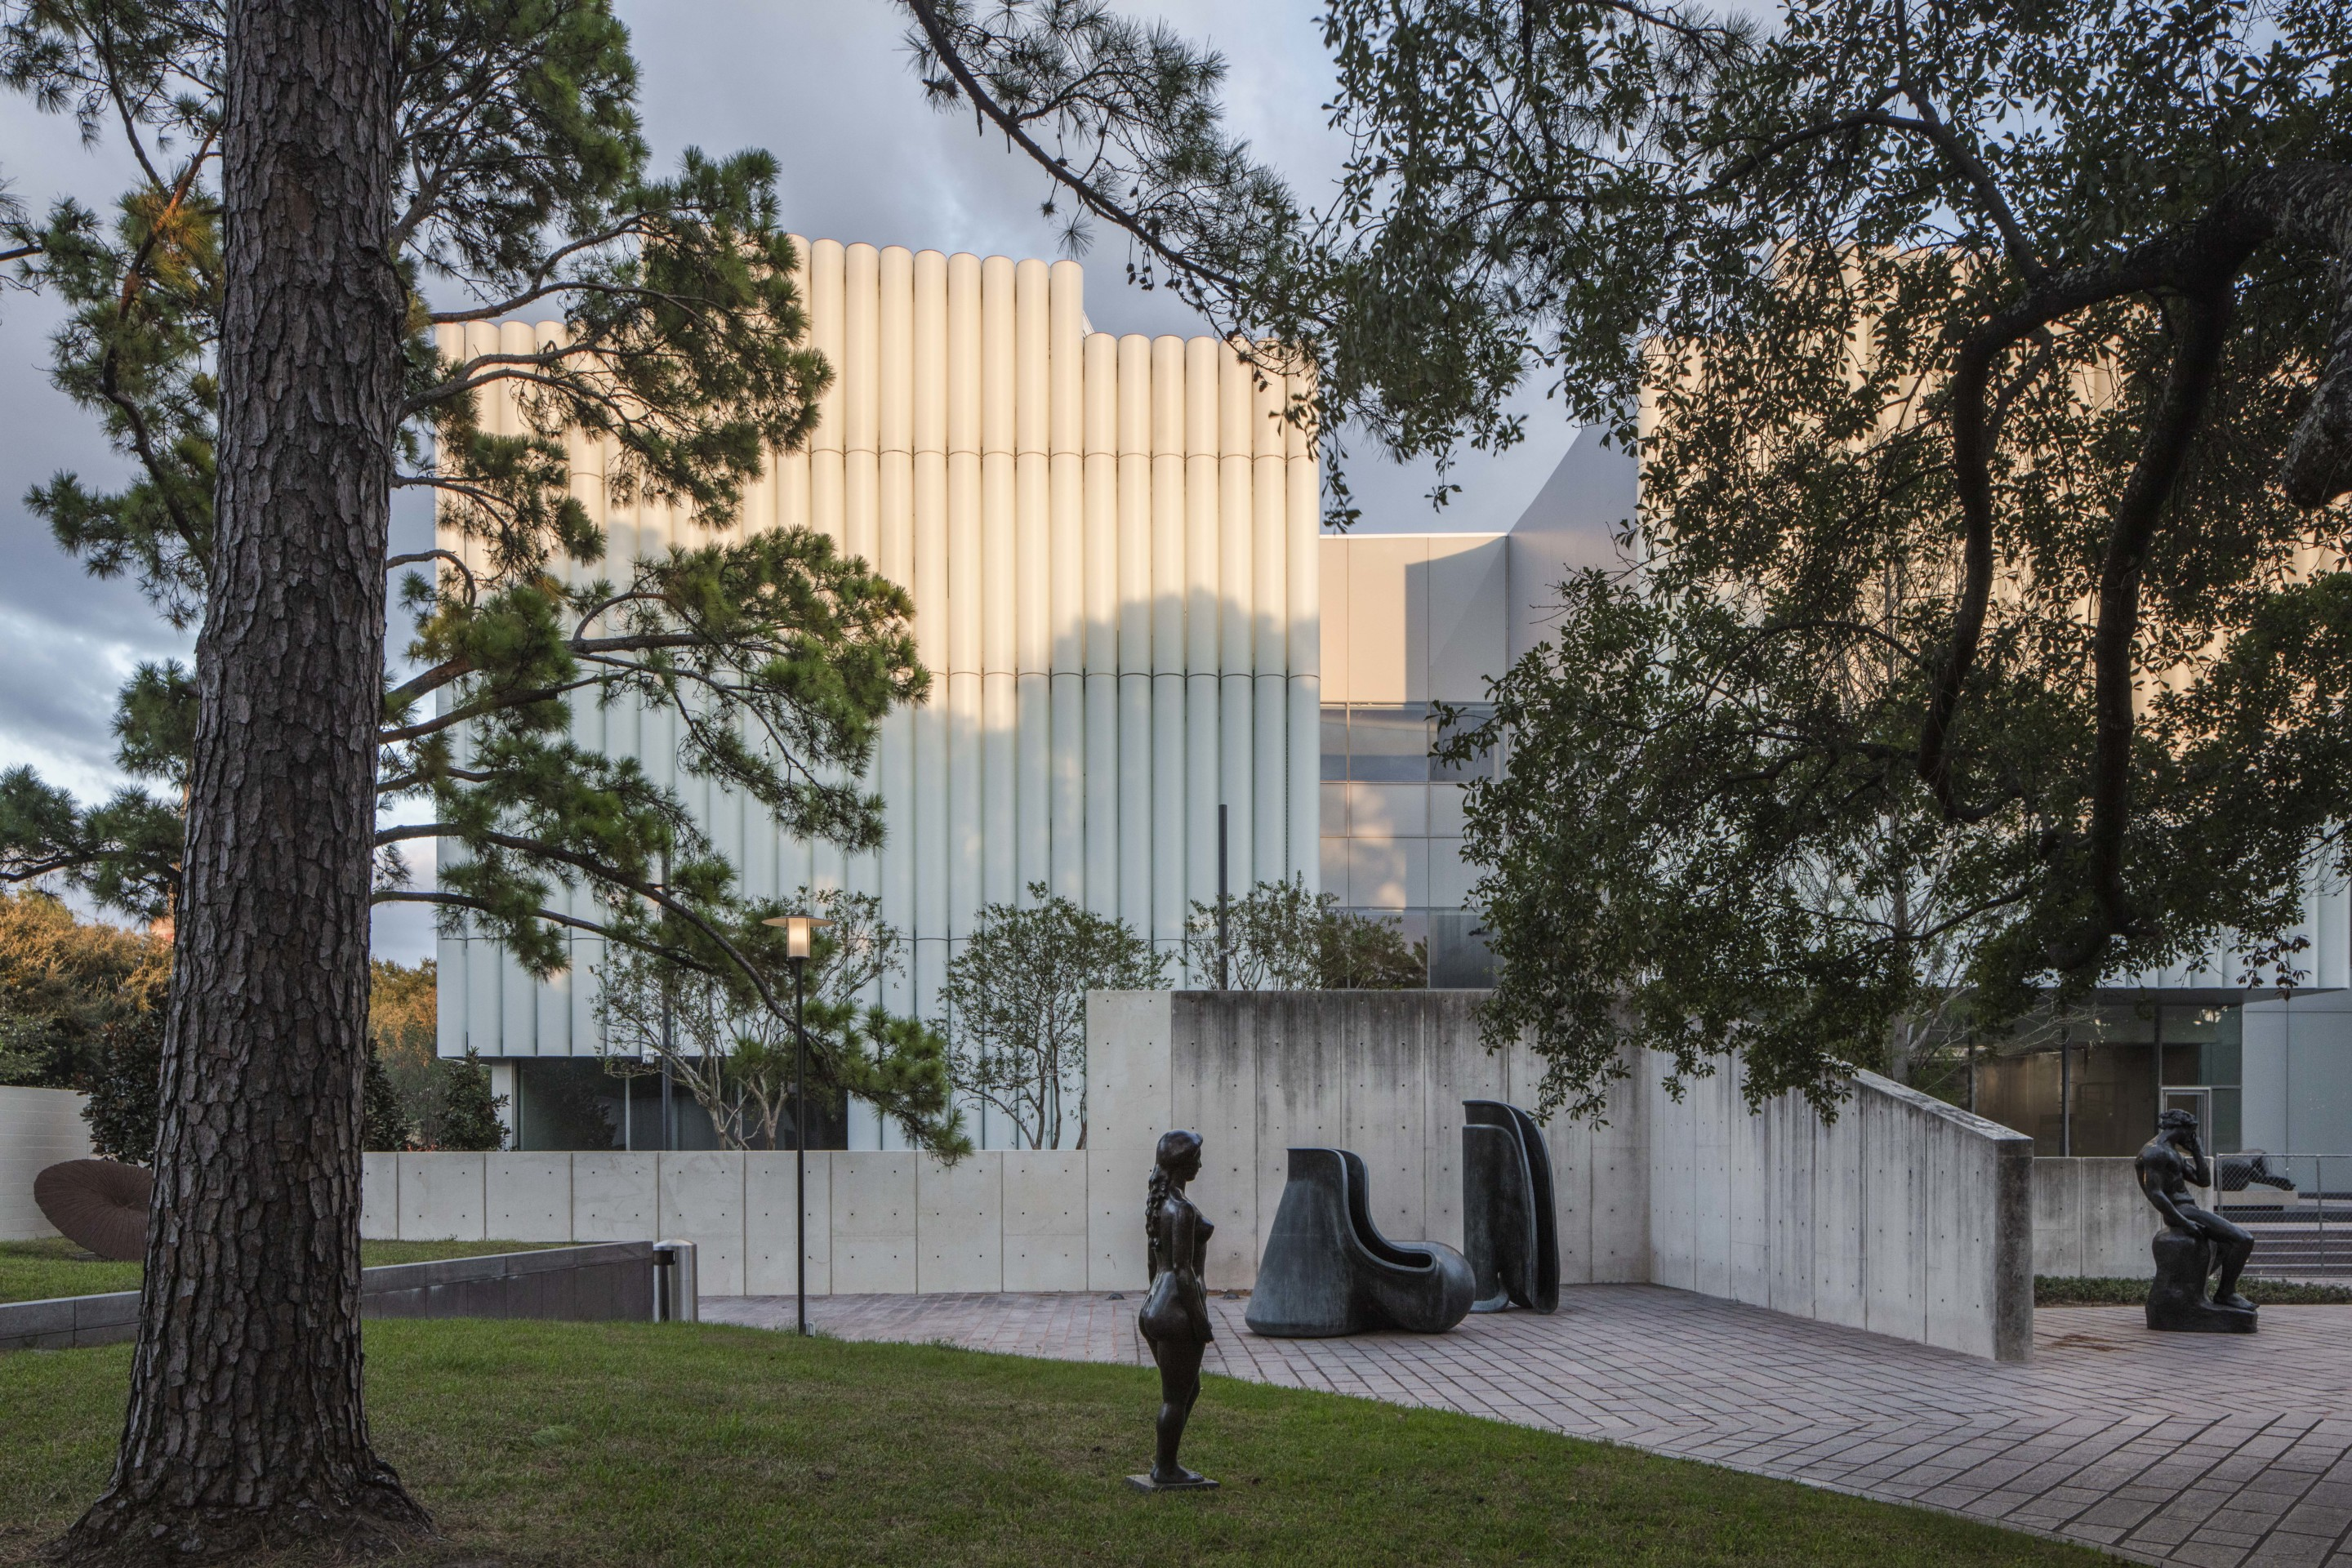 the exterior of the Kinder Building at MFAH